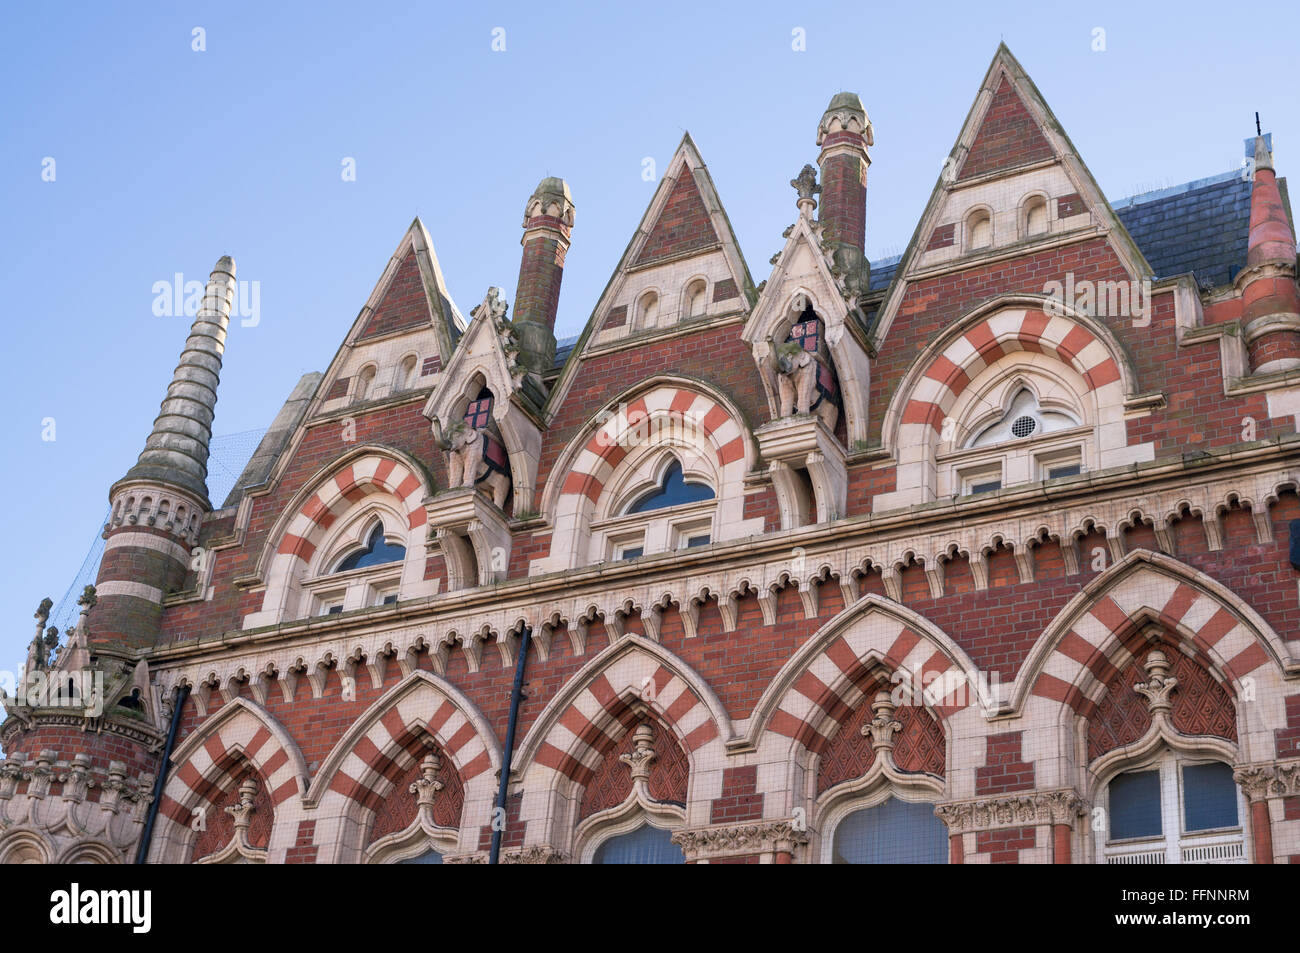 Hindu or Venetian Gothic architecture of the ex Elephant Tearooms in Sunderland North East  England, UK Stock Photo